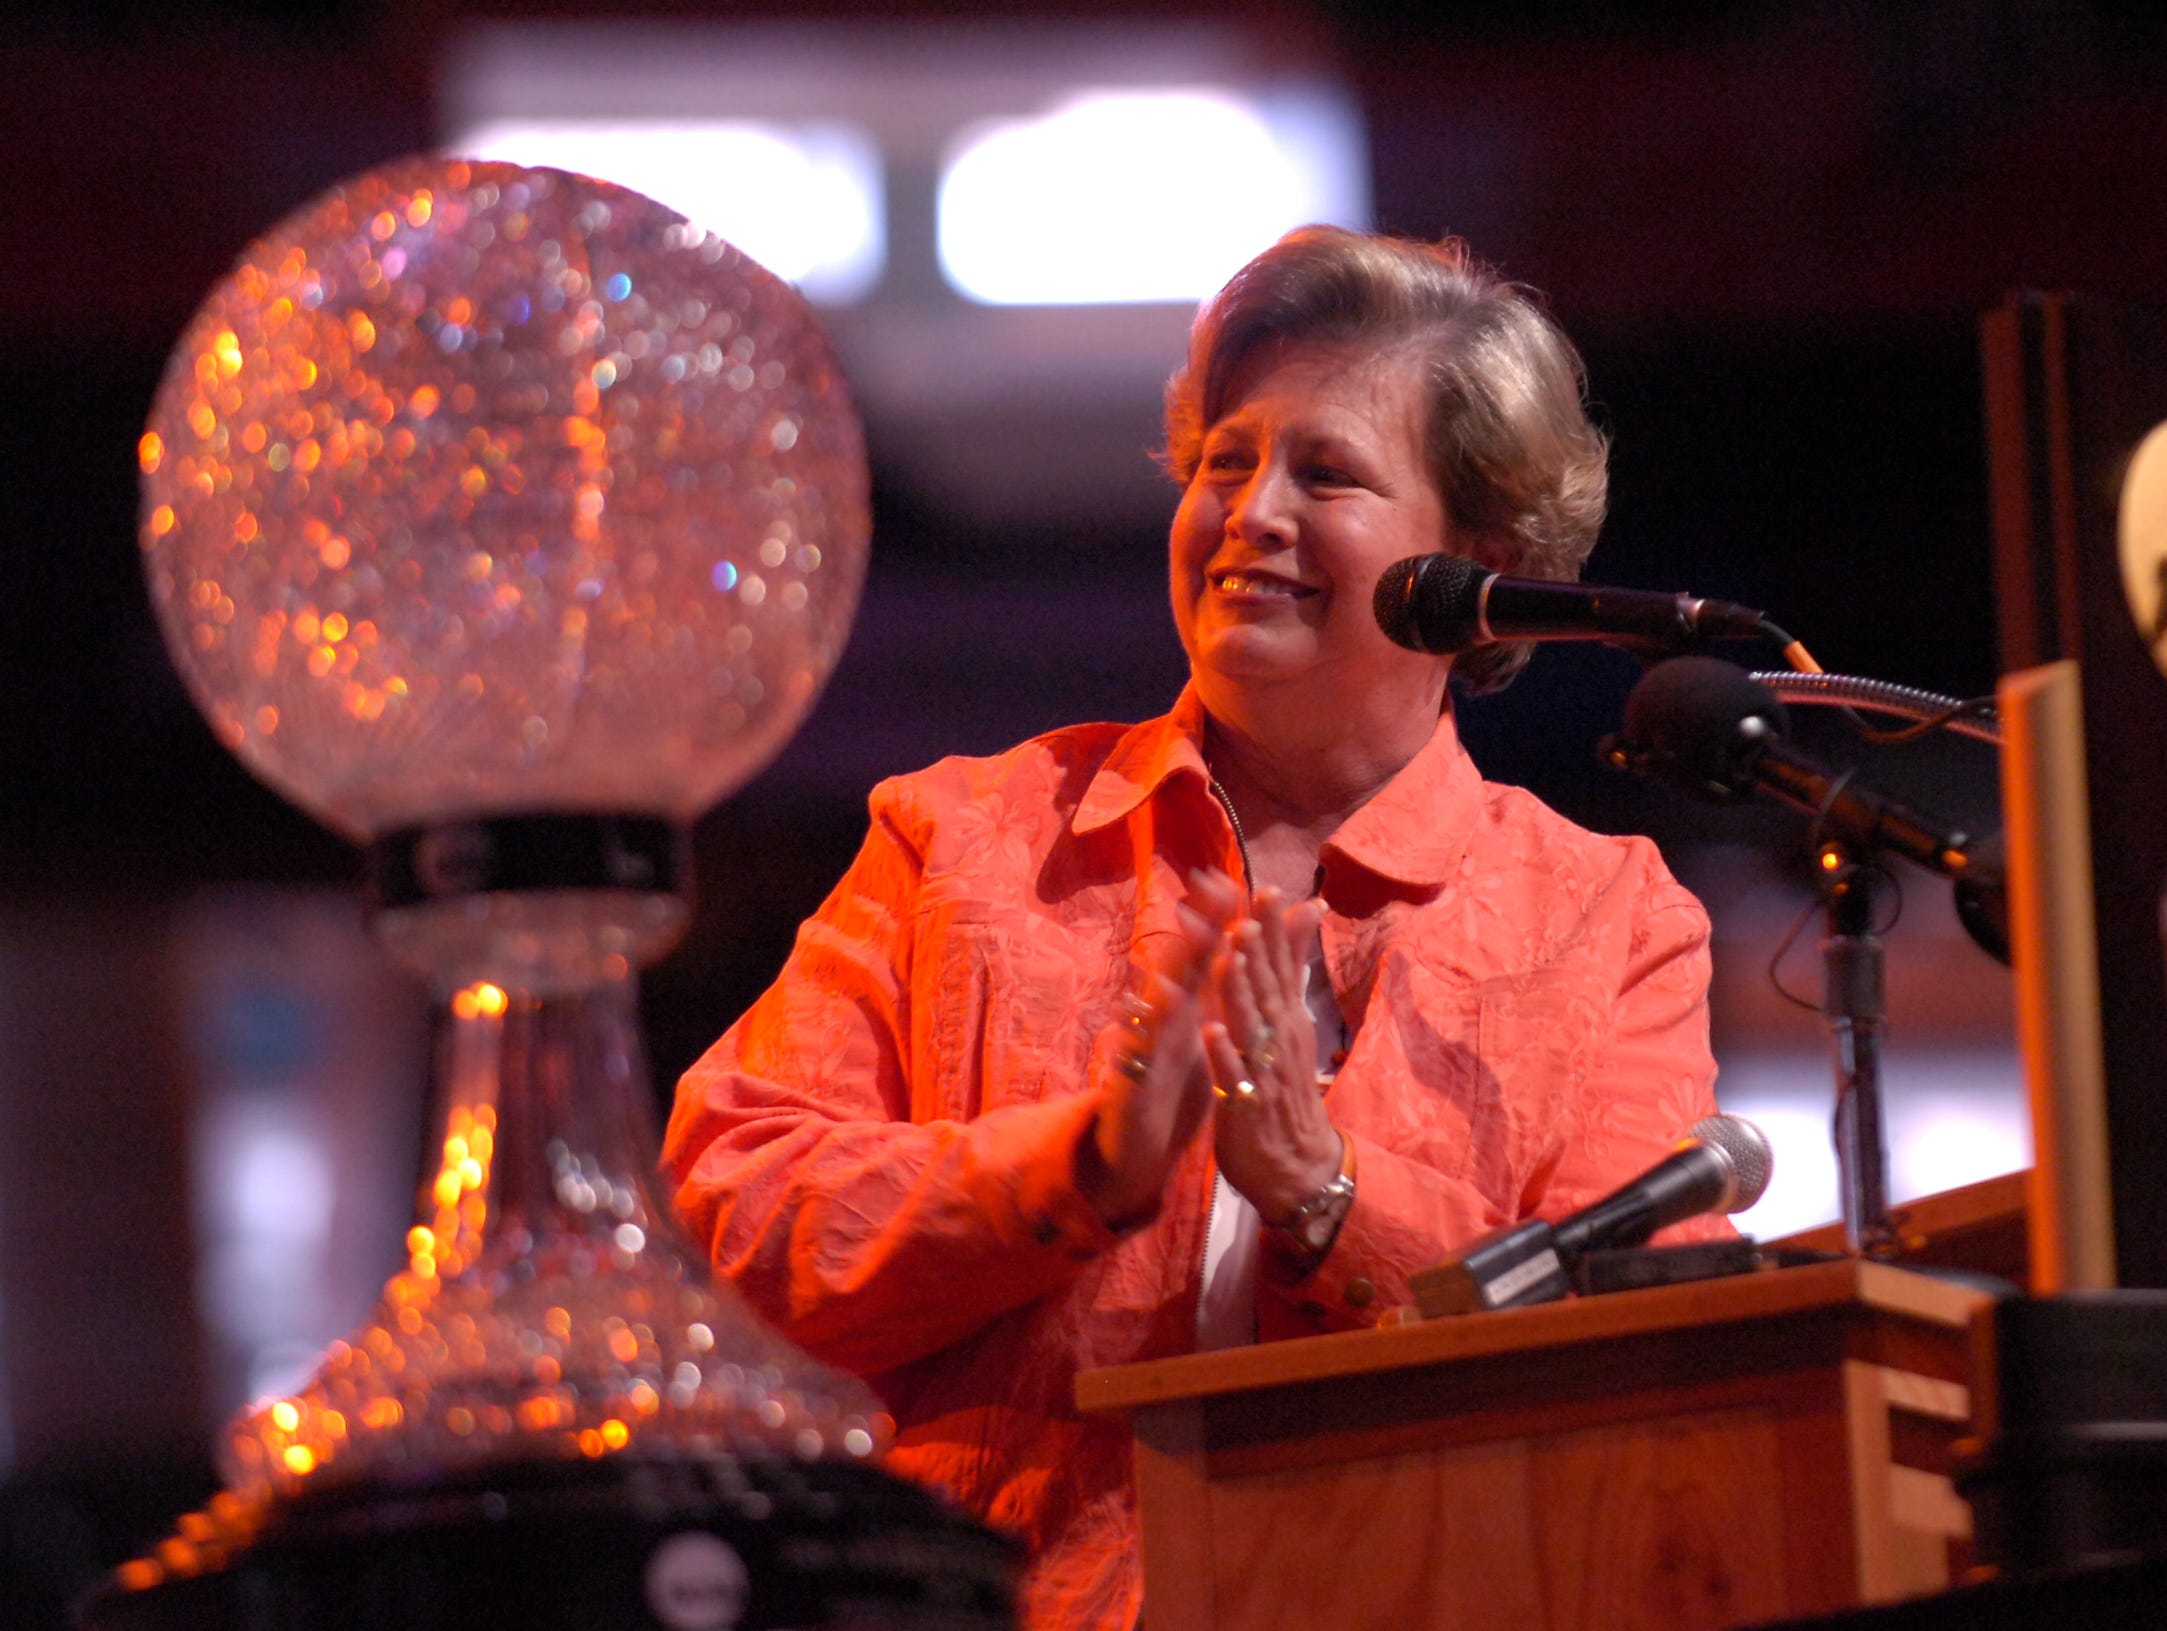 Women's athletics director Joan Cronan congratulates the team during a celebration for the 2008 NCAA National Champion Tennessee Lady Vols basketball team at Thompson Boling Arena on Wednesday evening. Tennessee defeated Stanford to claim their eighth national title.